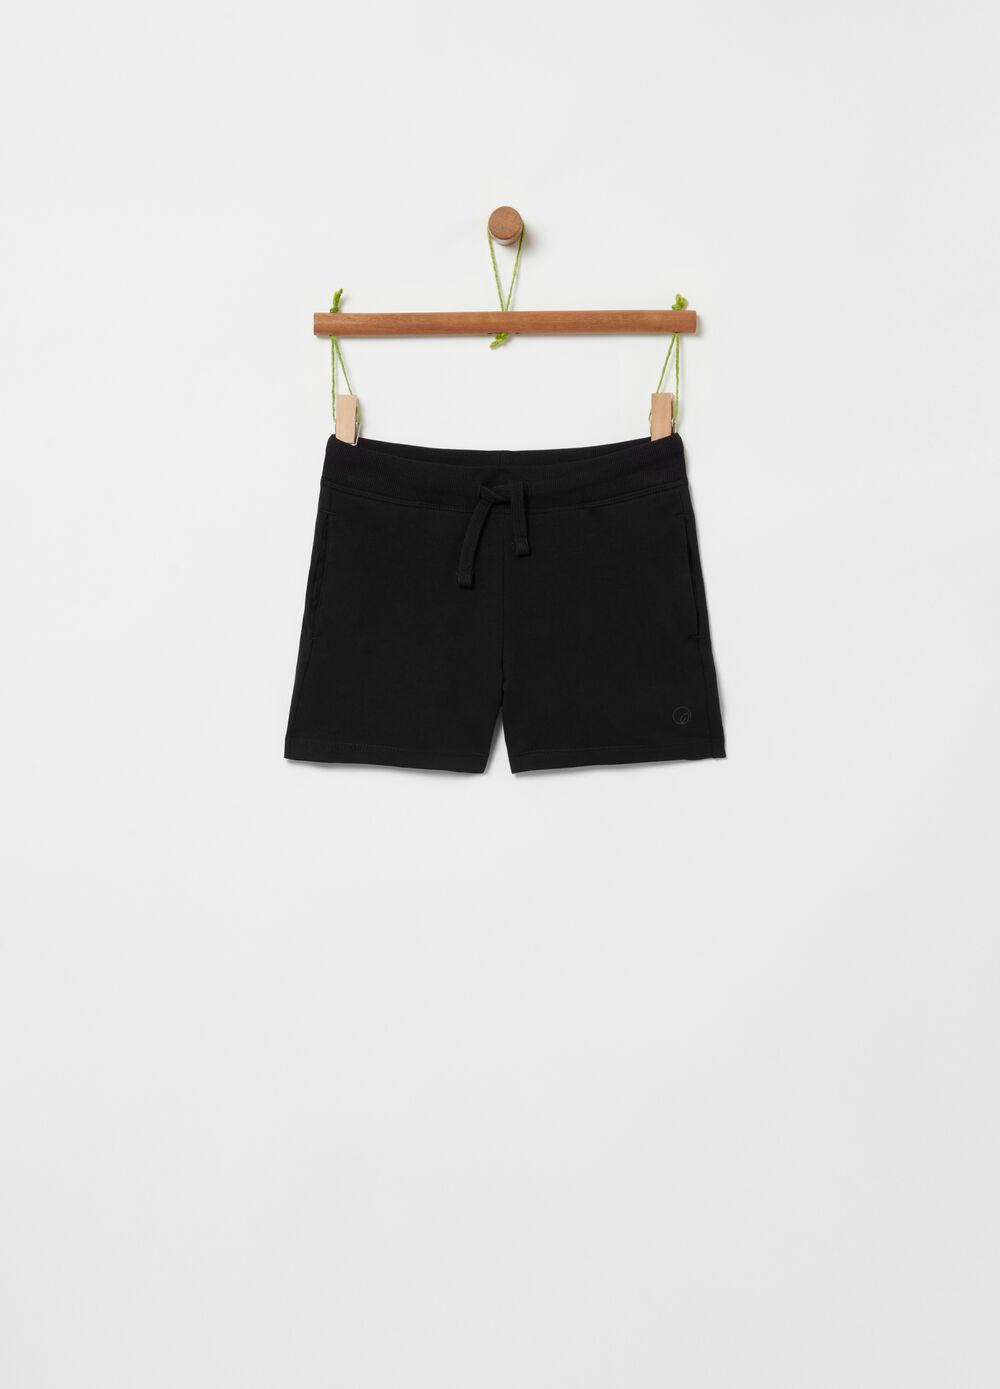 French terry stretch organic cotton shorts